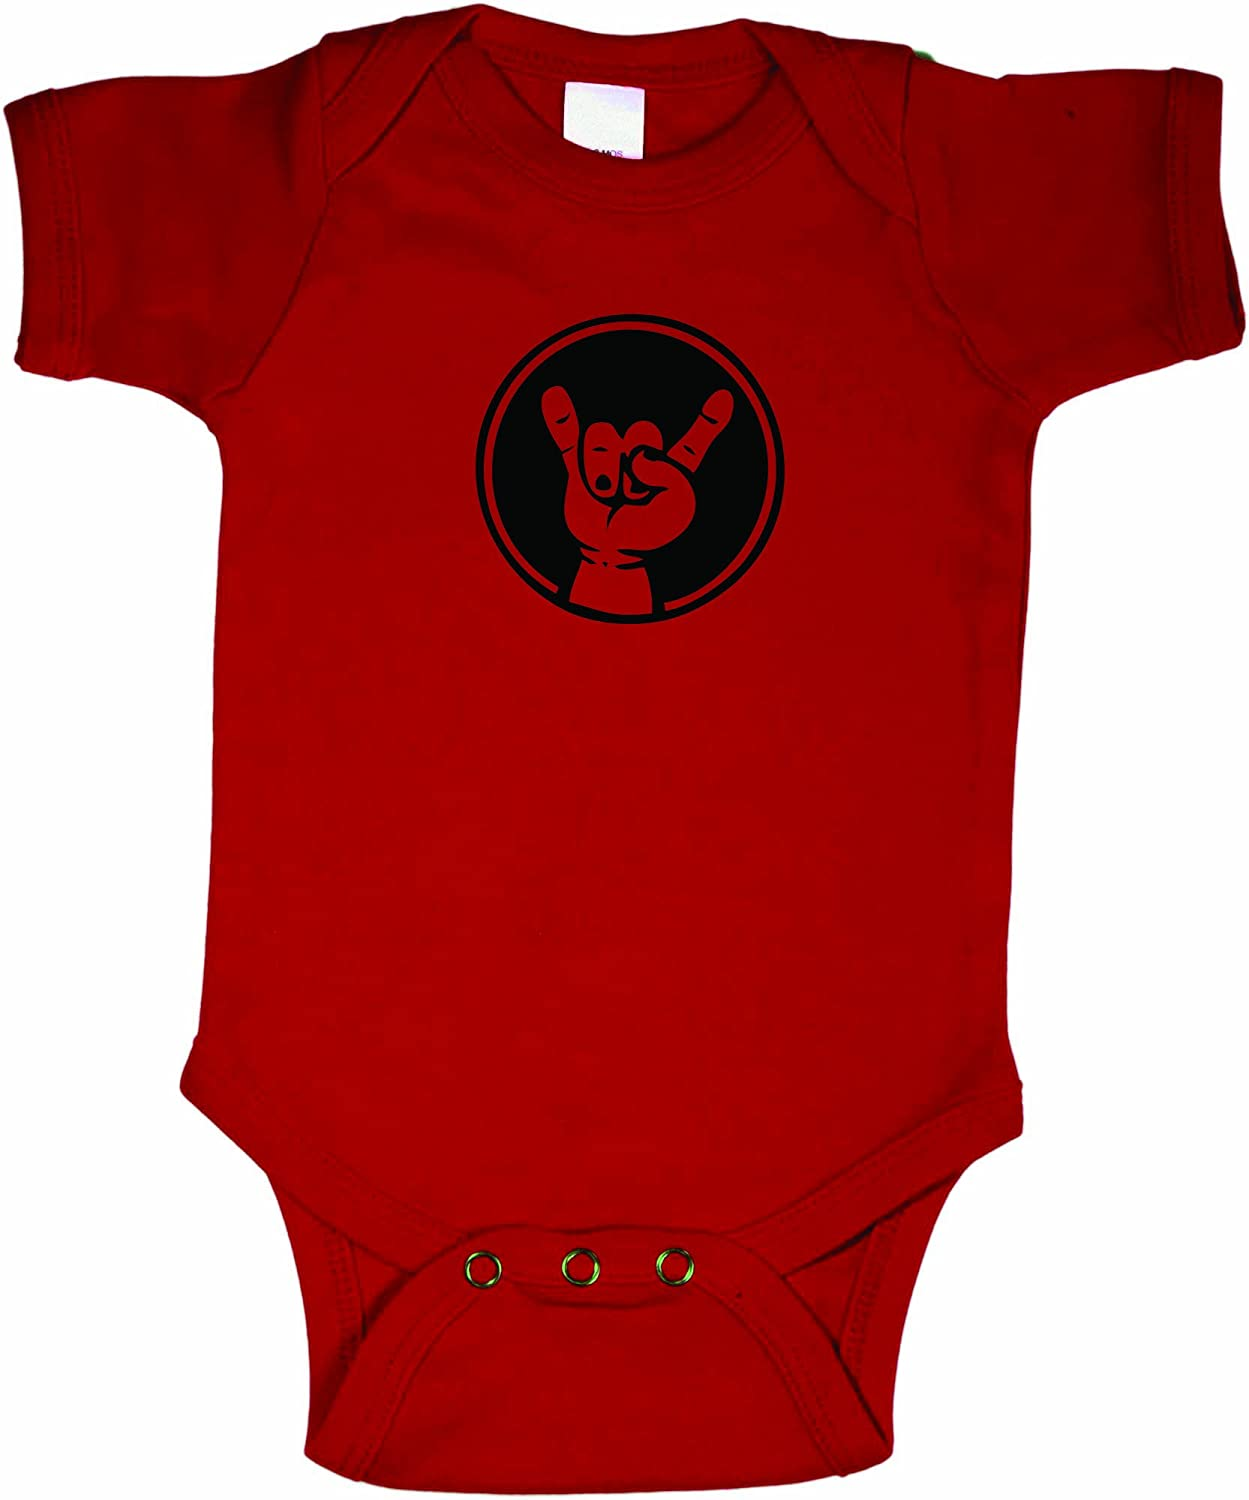 Baby Rock On Hand Awesome Creeper Bodysuit RED w/Black (12-18 Months)